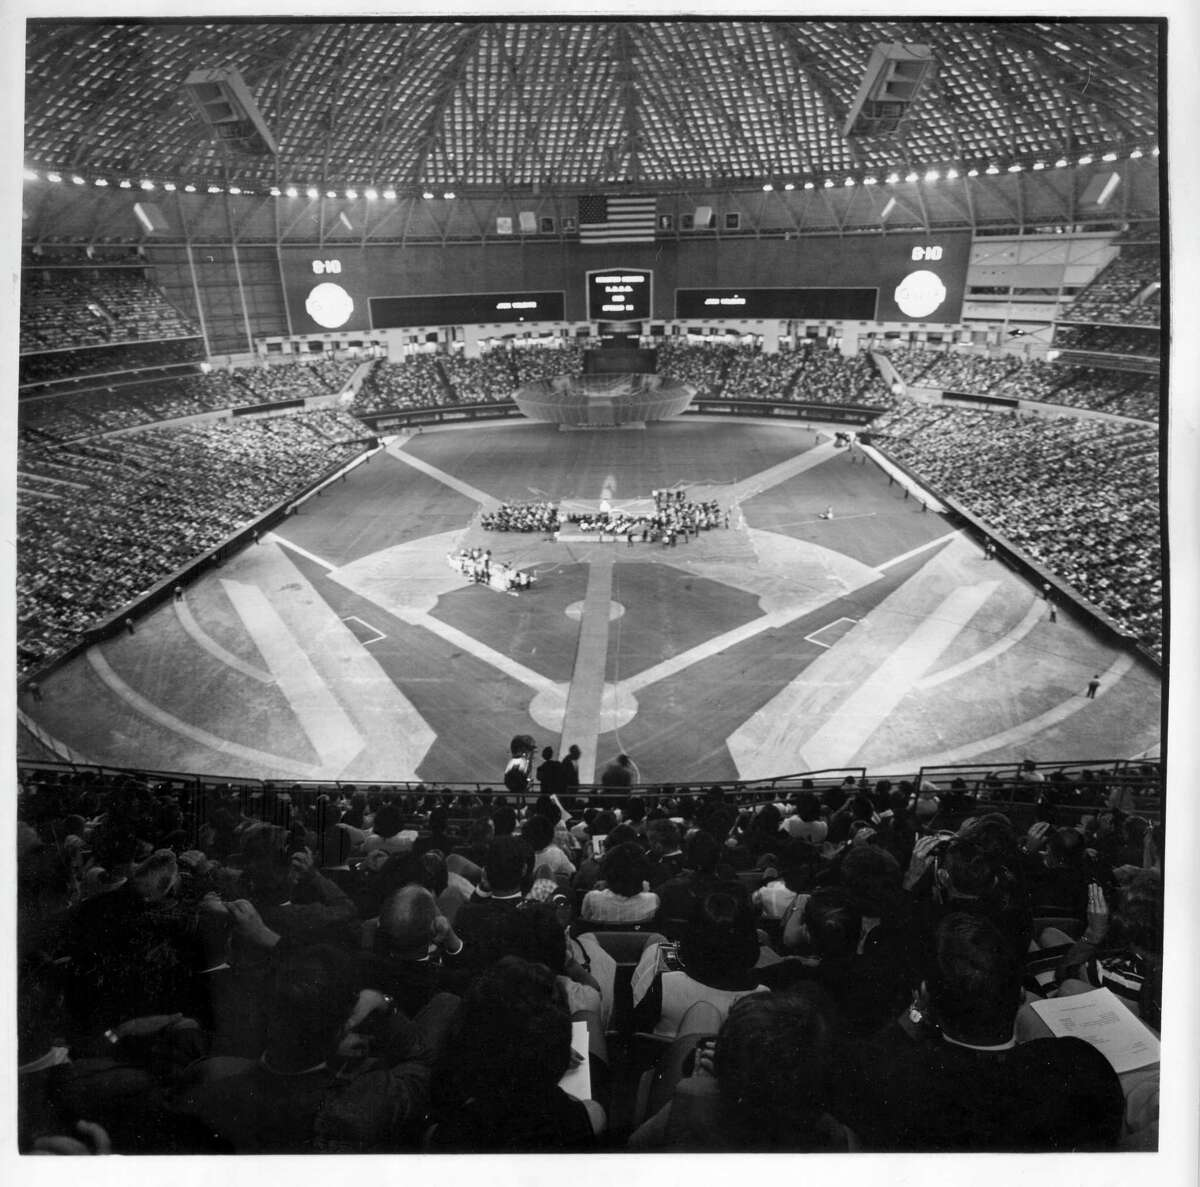 A celebration for Apollo 11 astronauts and the Manned Spacecraft Center - now the Johnson Space Center - was held at the Astrodome on Aug. 16, 1969 after the moon landing on July 20, 1969.